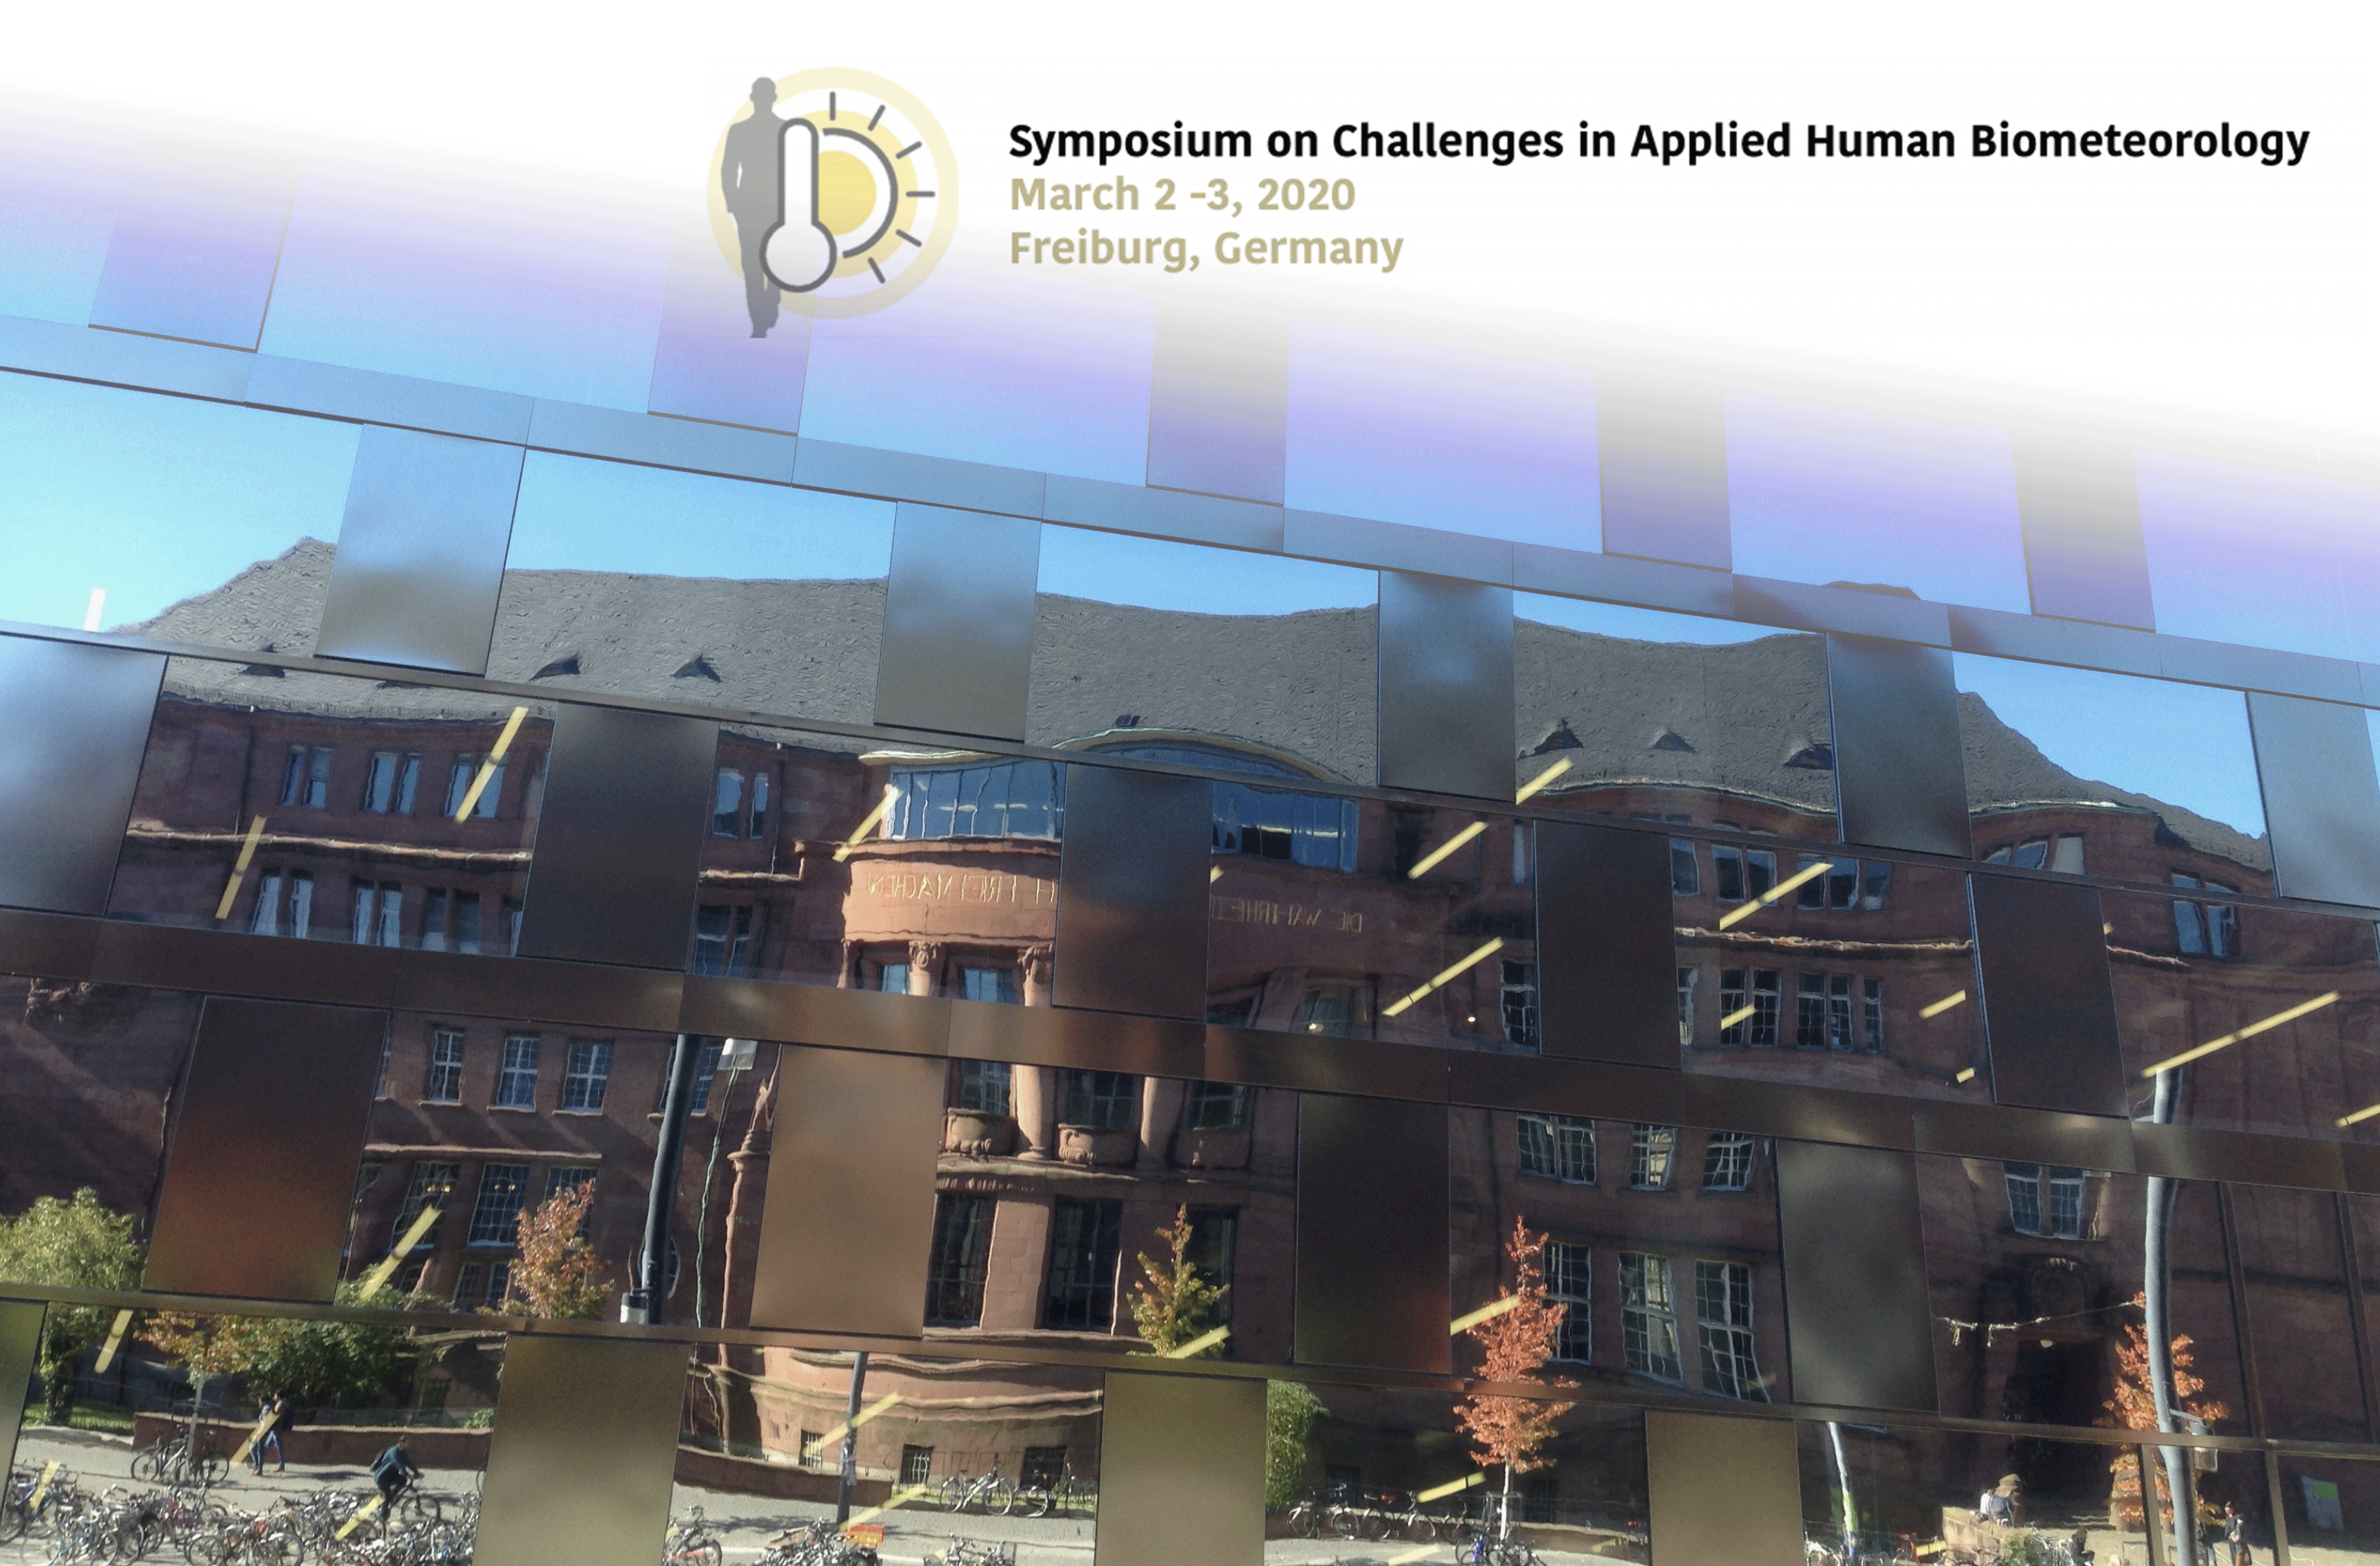 Symposium Symposium on Challenges in applied human Biometeorology